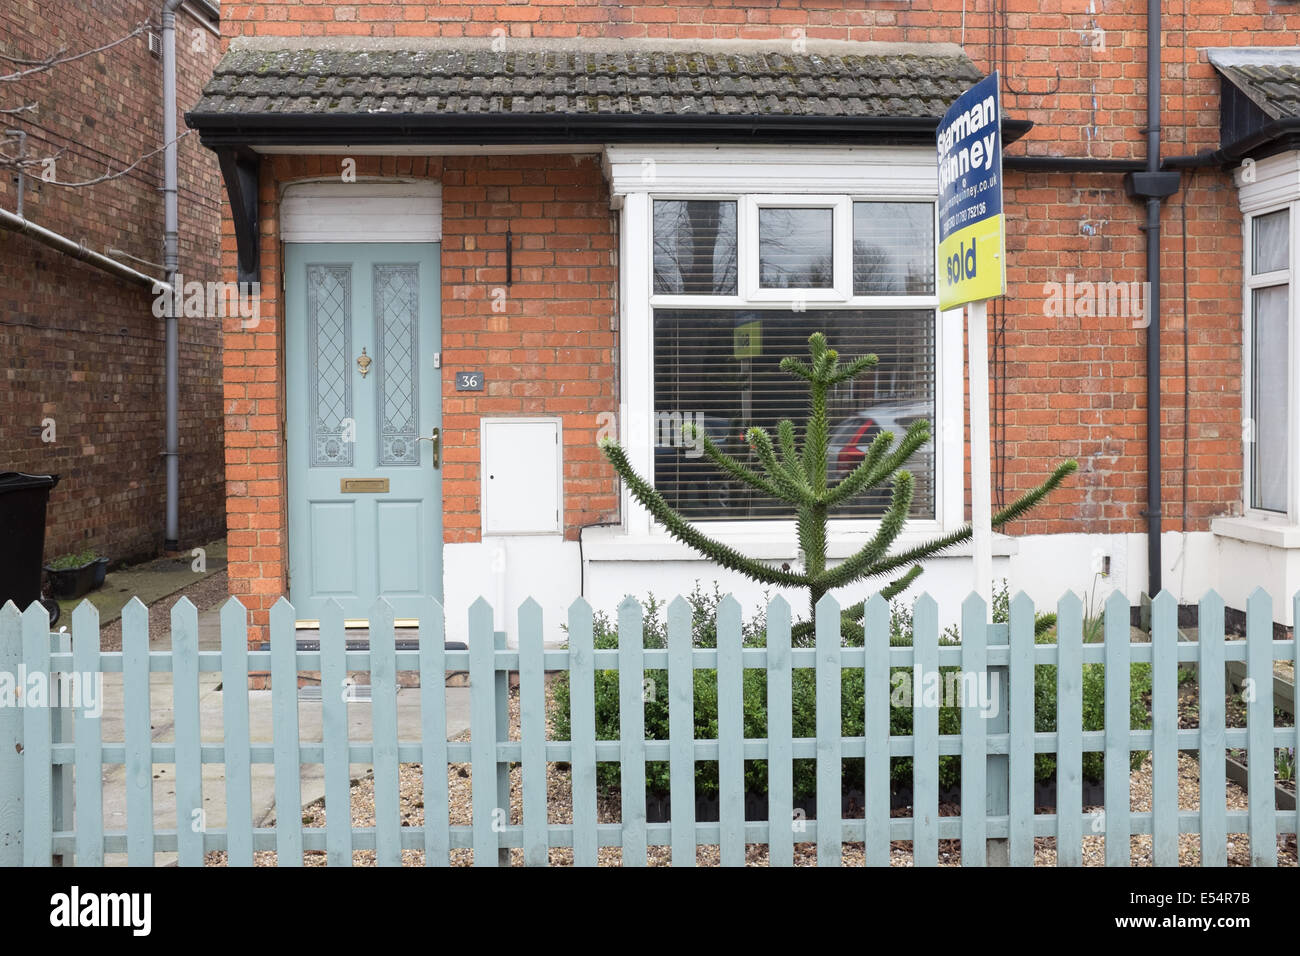 Young Monkey Puzzle tree in the front garden of a house 'for sale' in Lincoln UK. - Stock Image